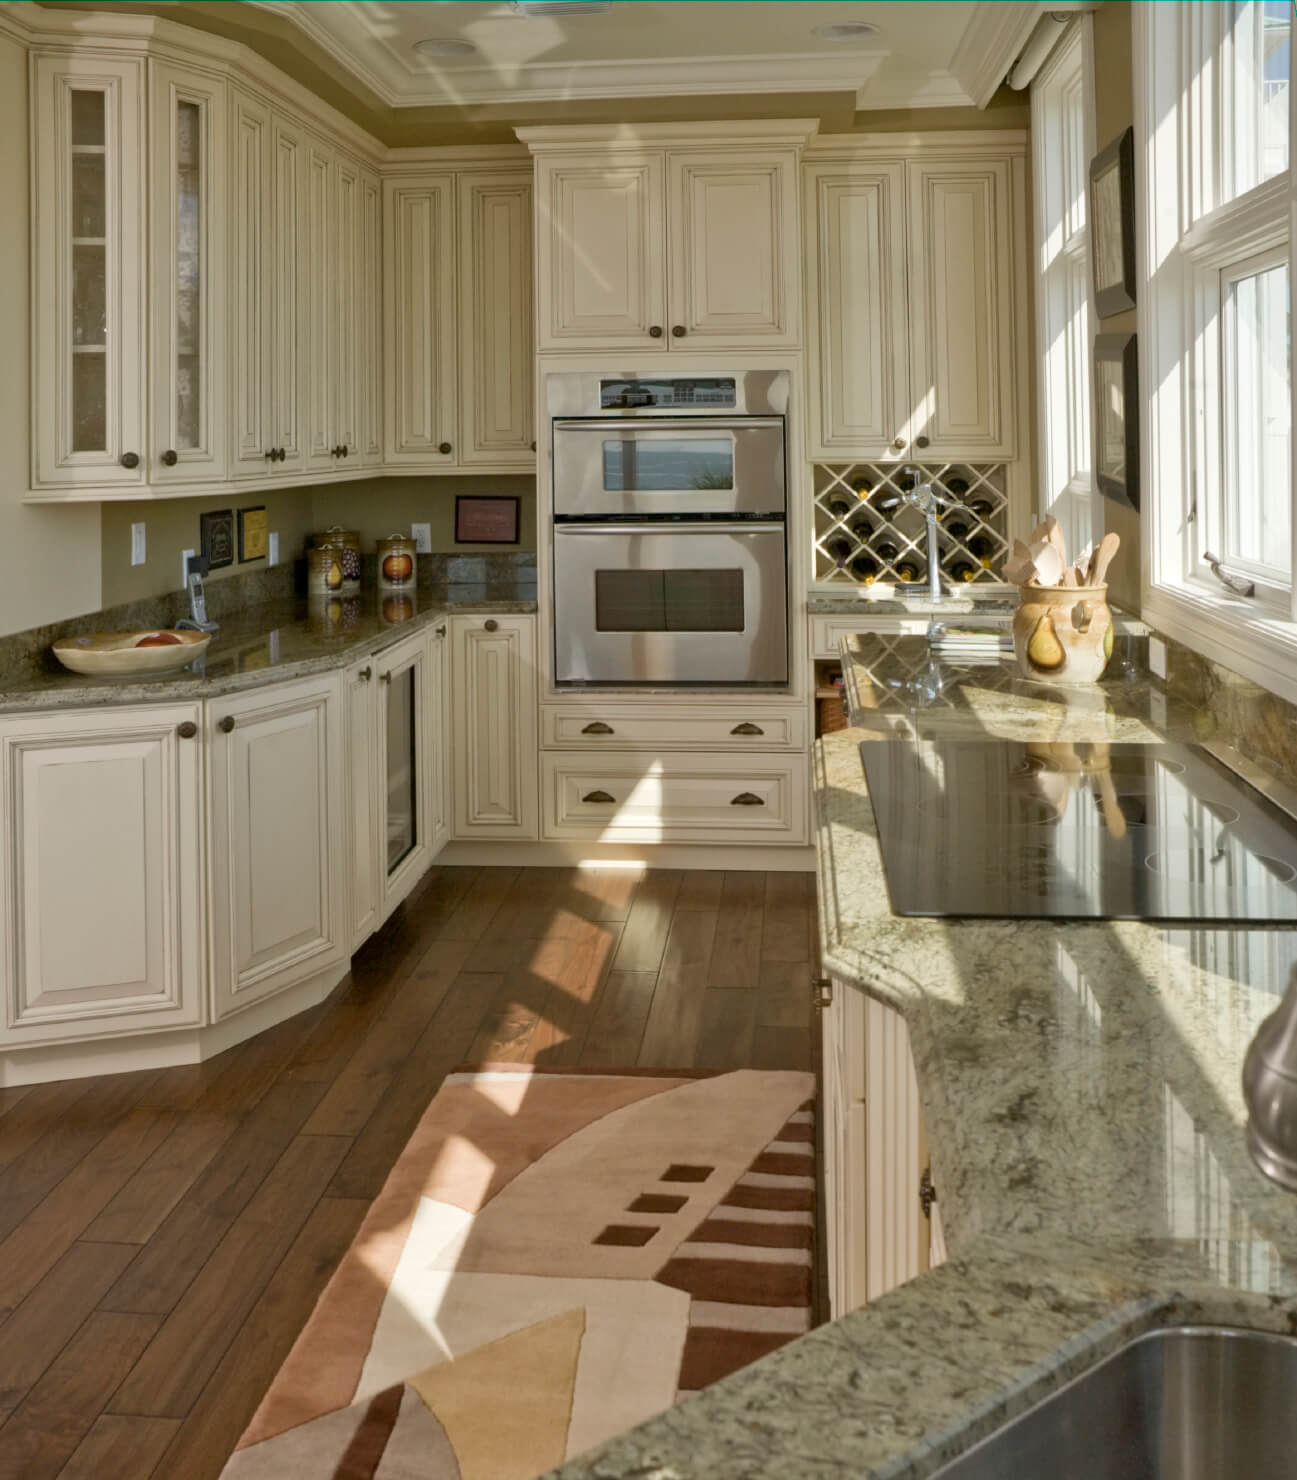 dark green island with beige marble countertop in this sunlit kitchen